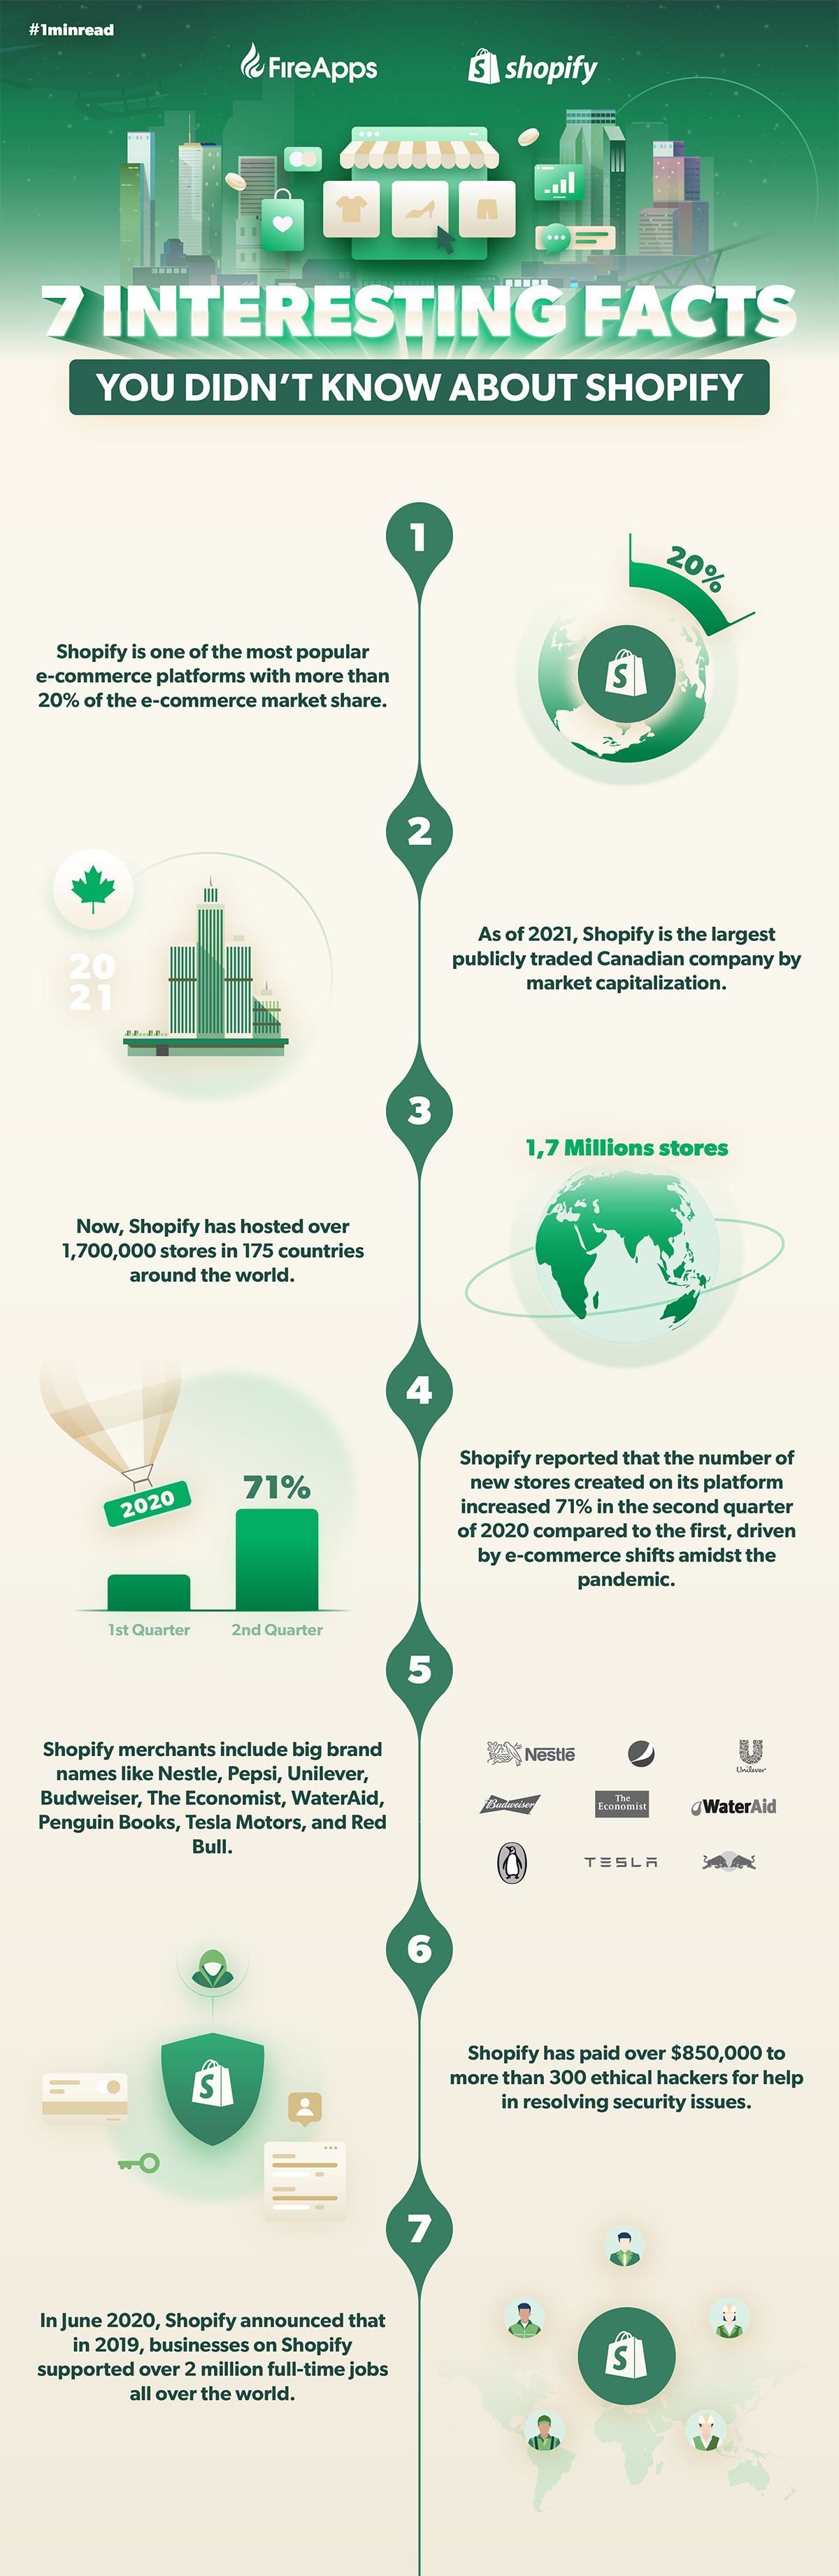 7-interesting-facts-about-shopify-you-didn't-know